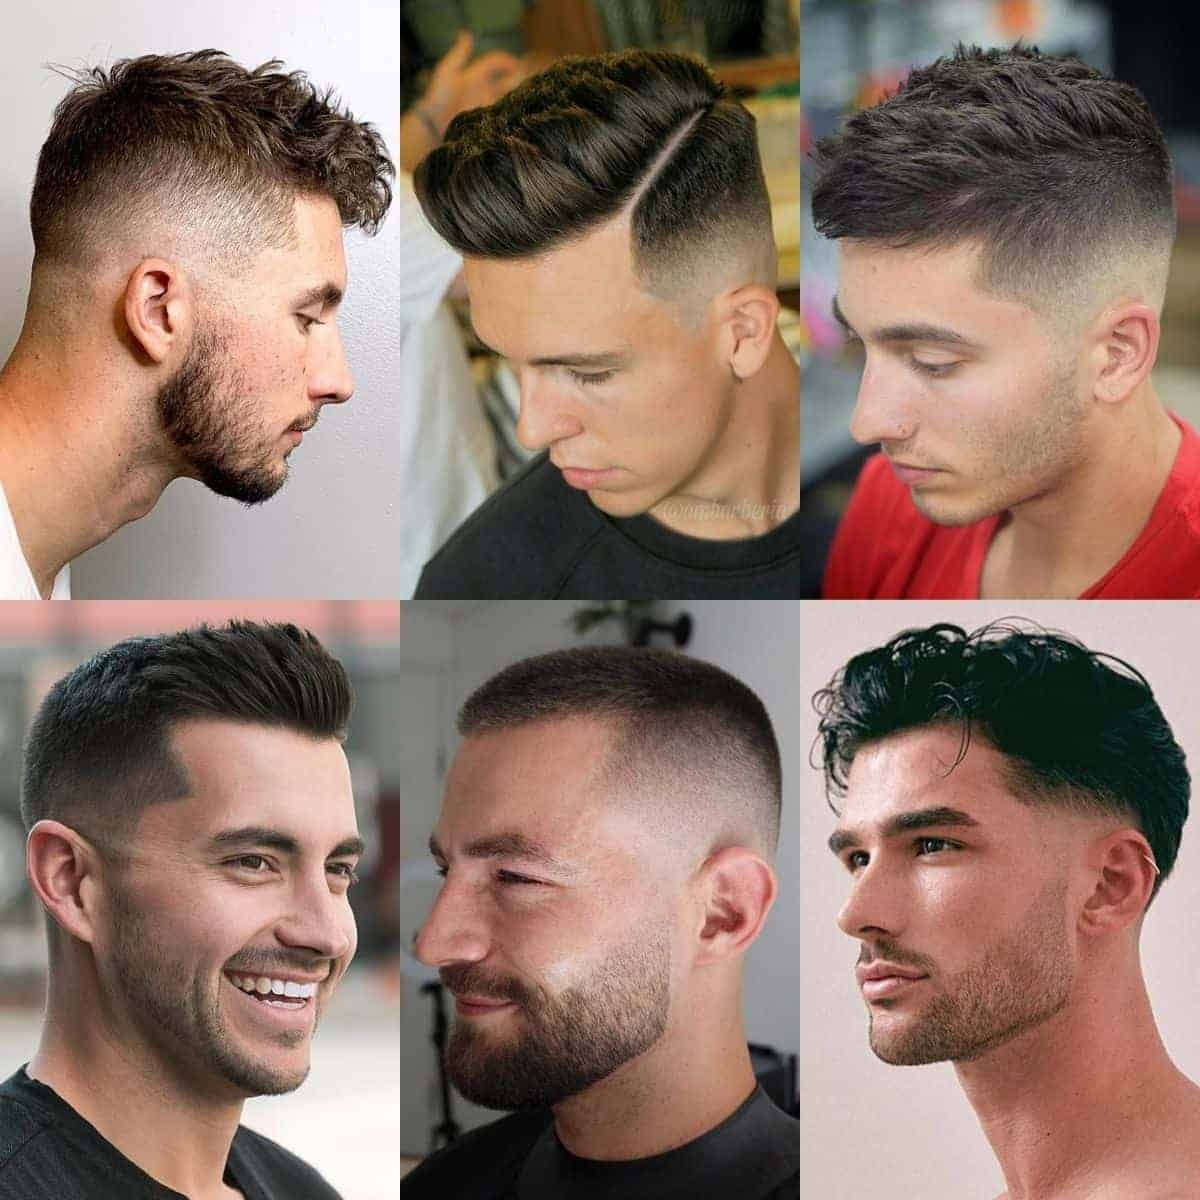 Best fade haircuts and hairstyles for men - Next Level Gents